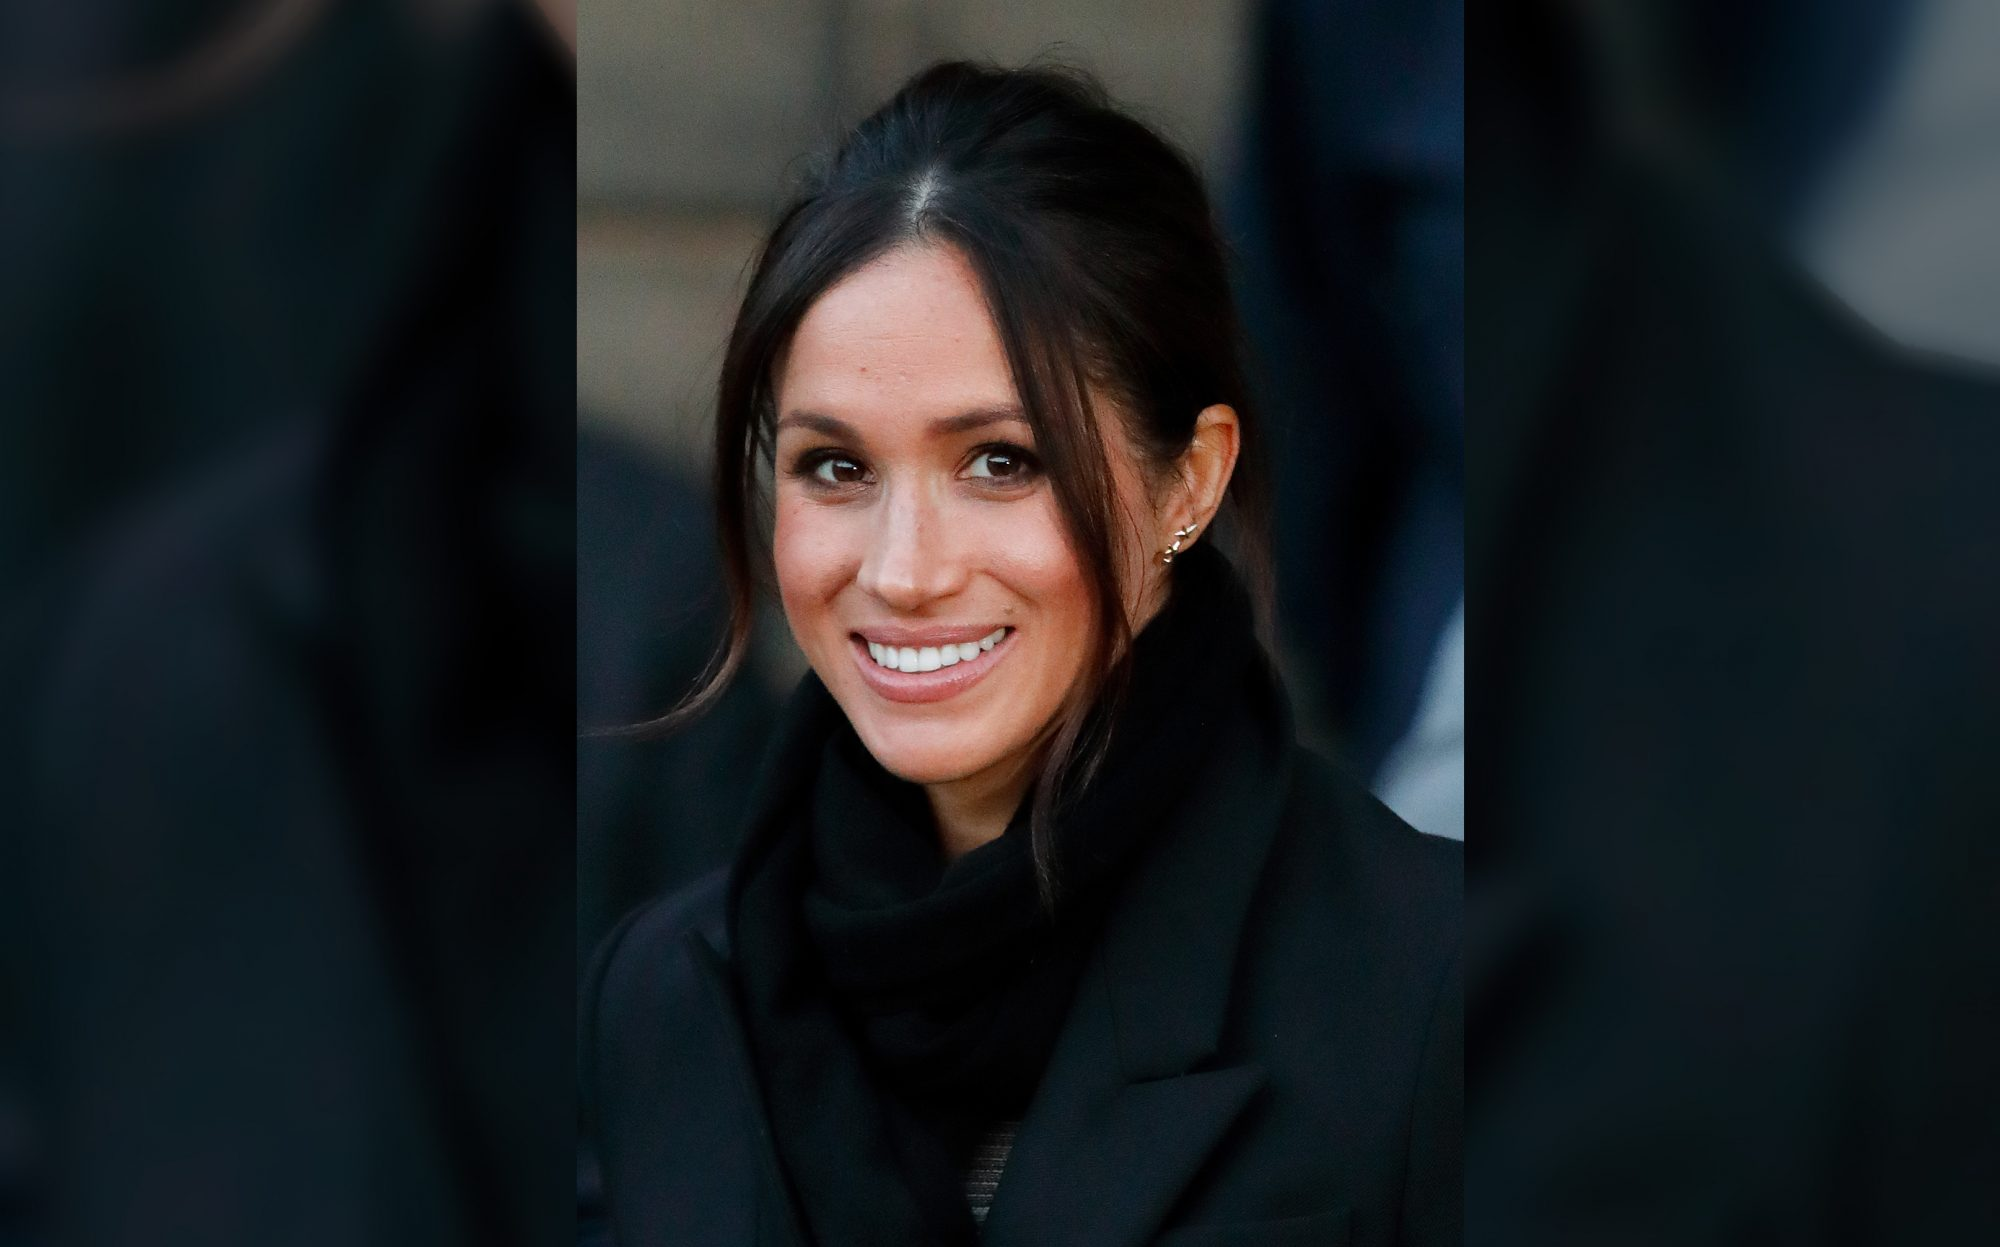 Meghan Markle's Delicate Gold Necklace Is Exactly What You Should Treat Yourself to For Valentine's Day